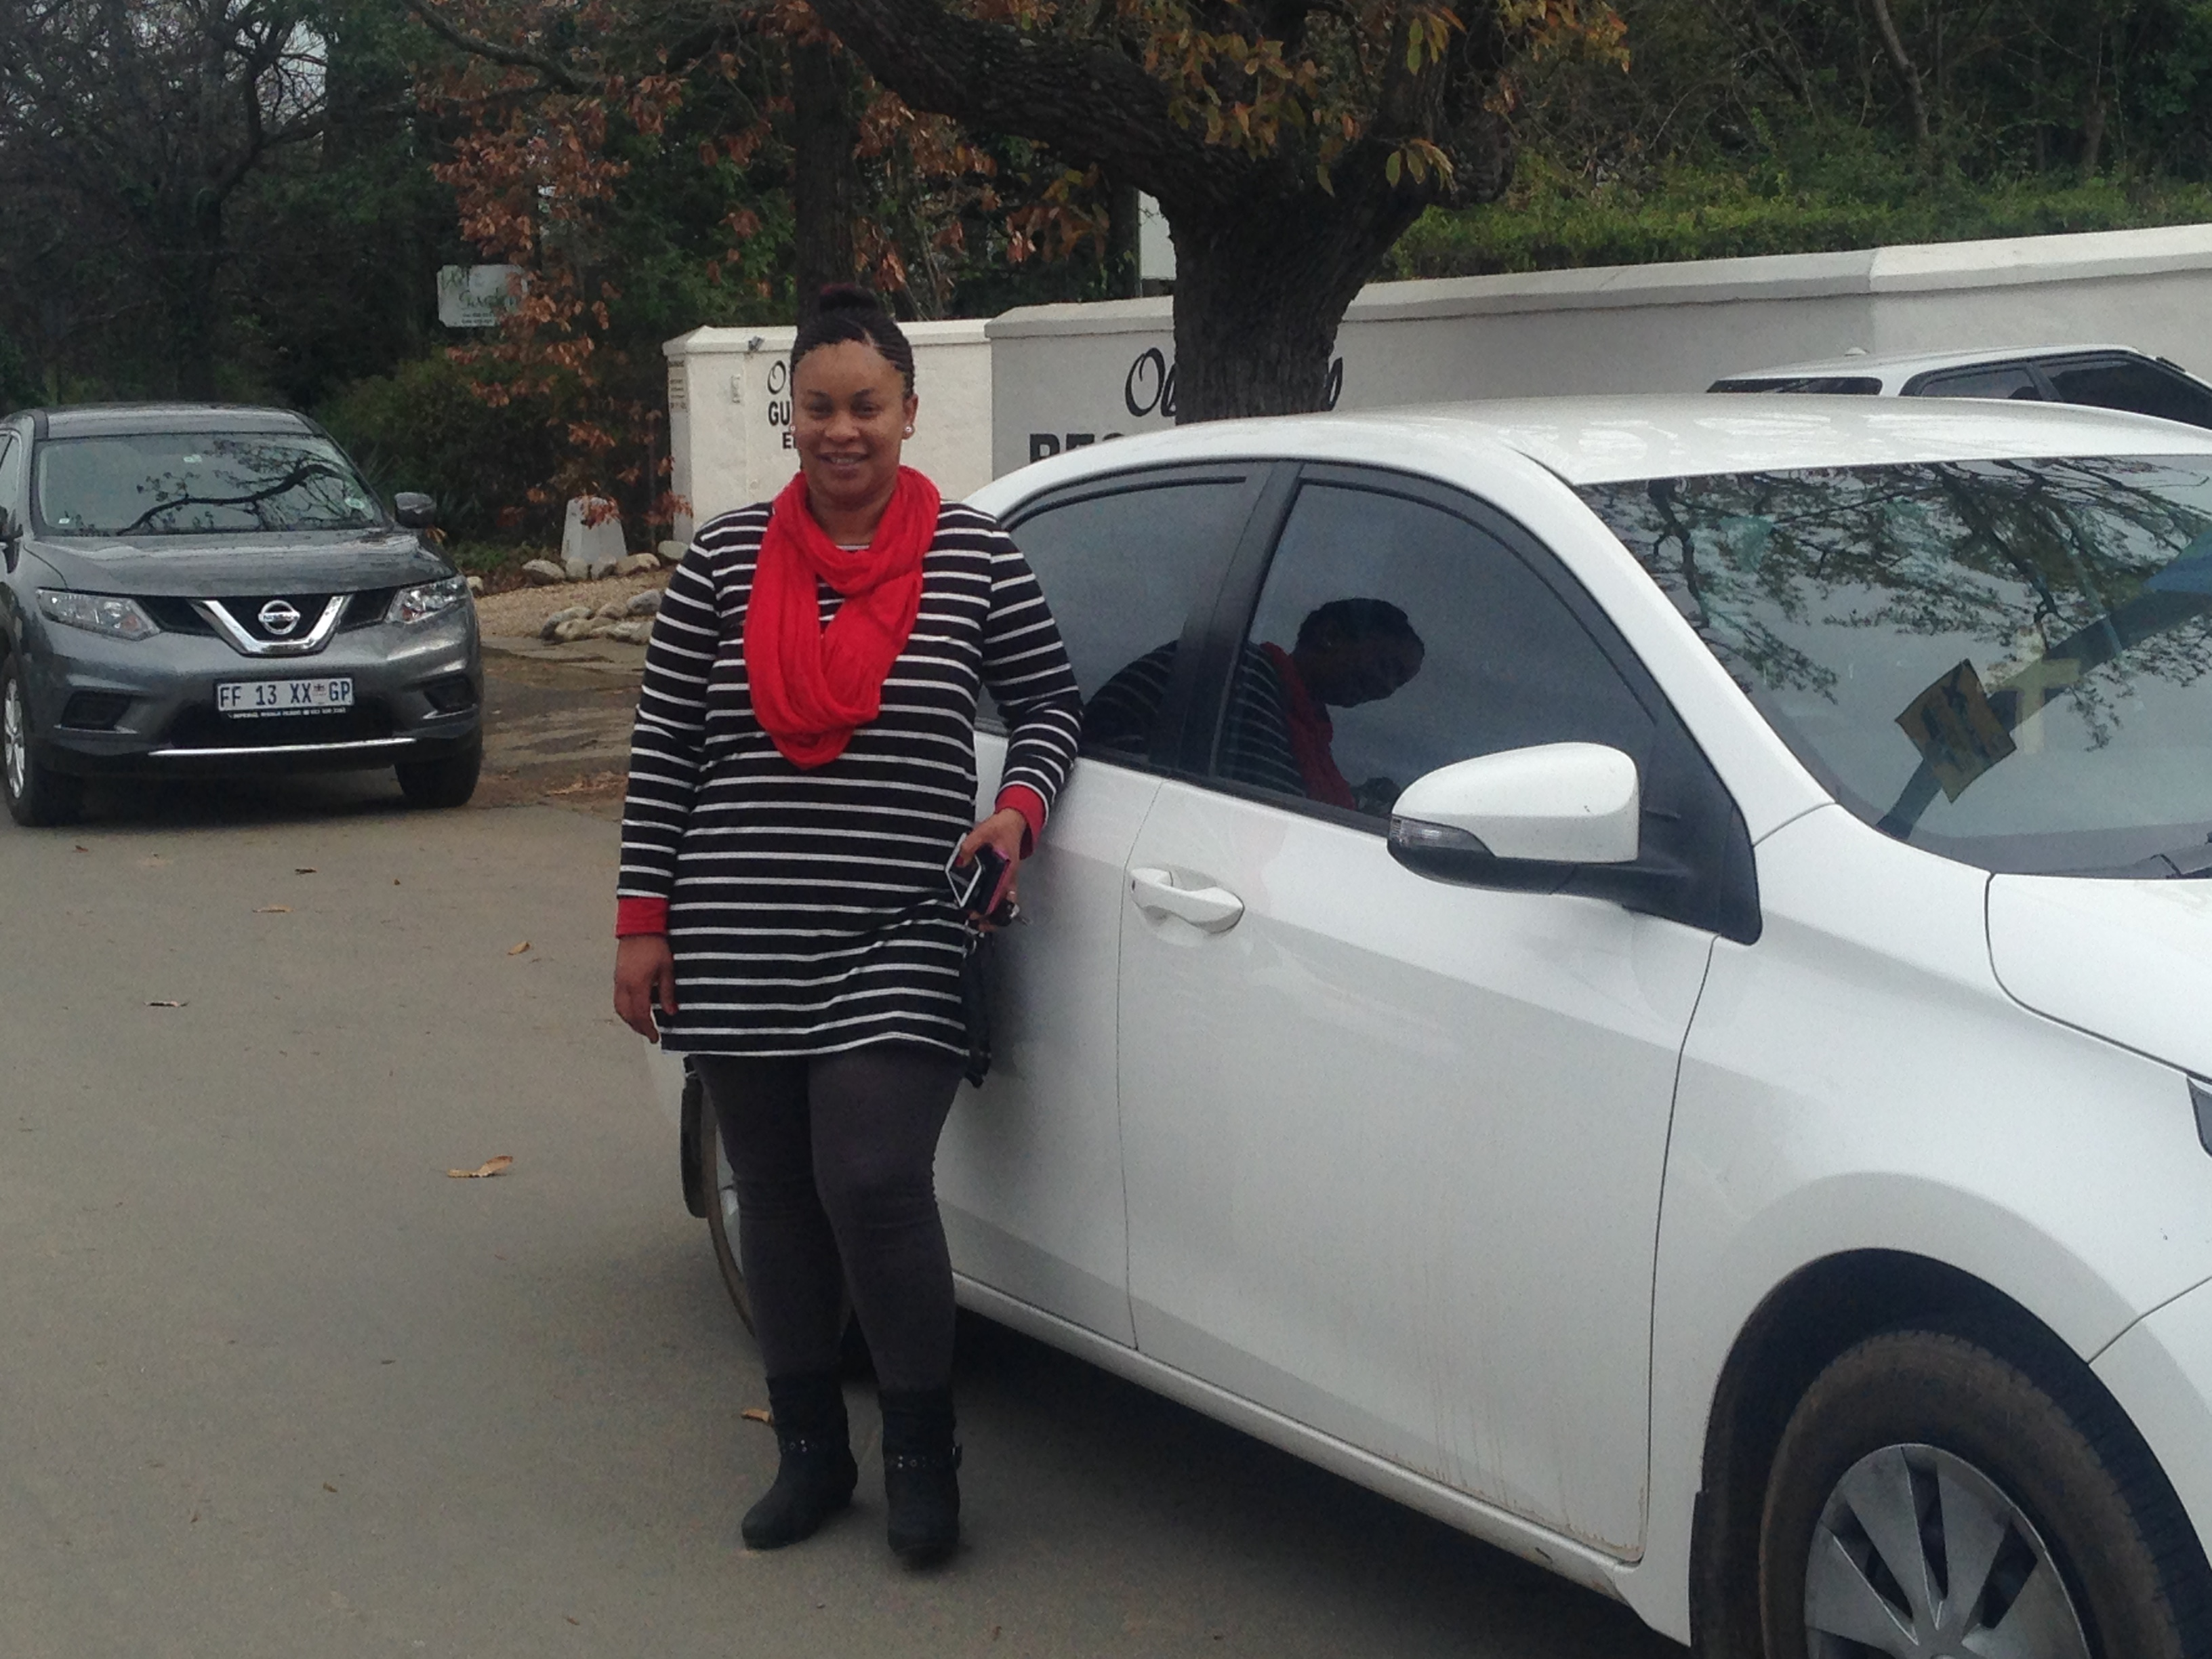 The owner, Annelize from local taxi service Swellencab in Swellendam